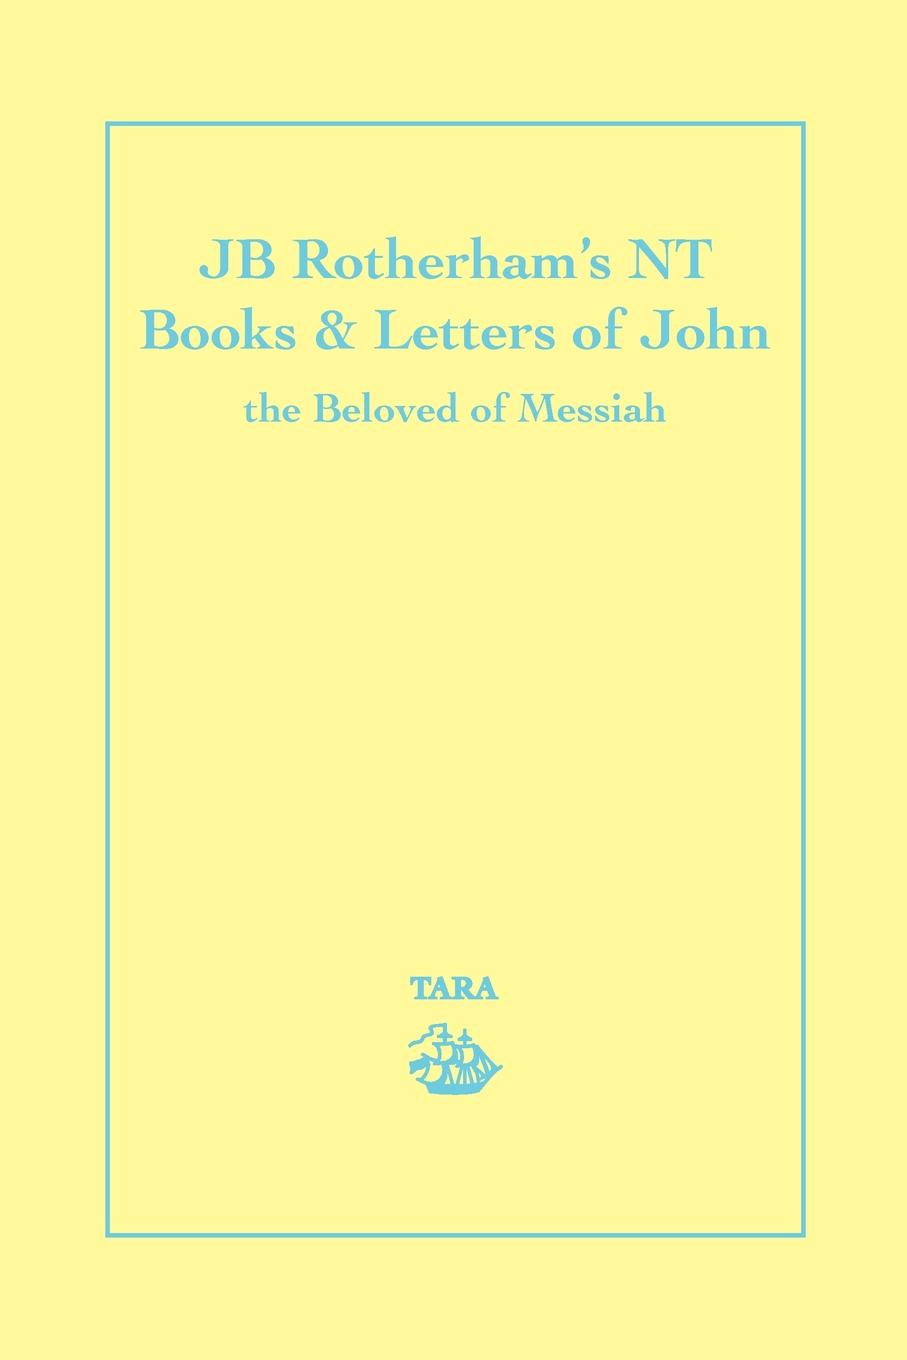 K. M. Young Jb Rotherhams NT Book & Letters of John. The Beloved Messiah